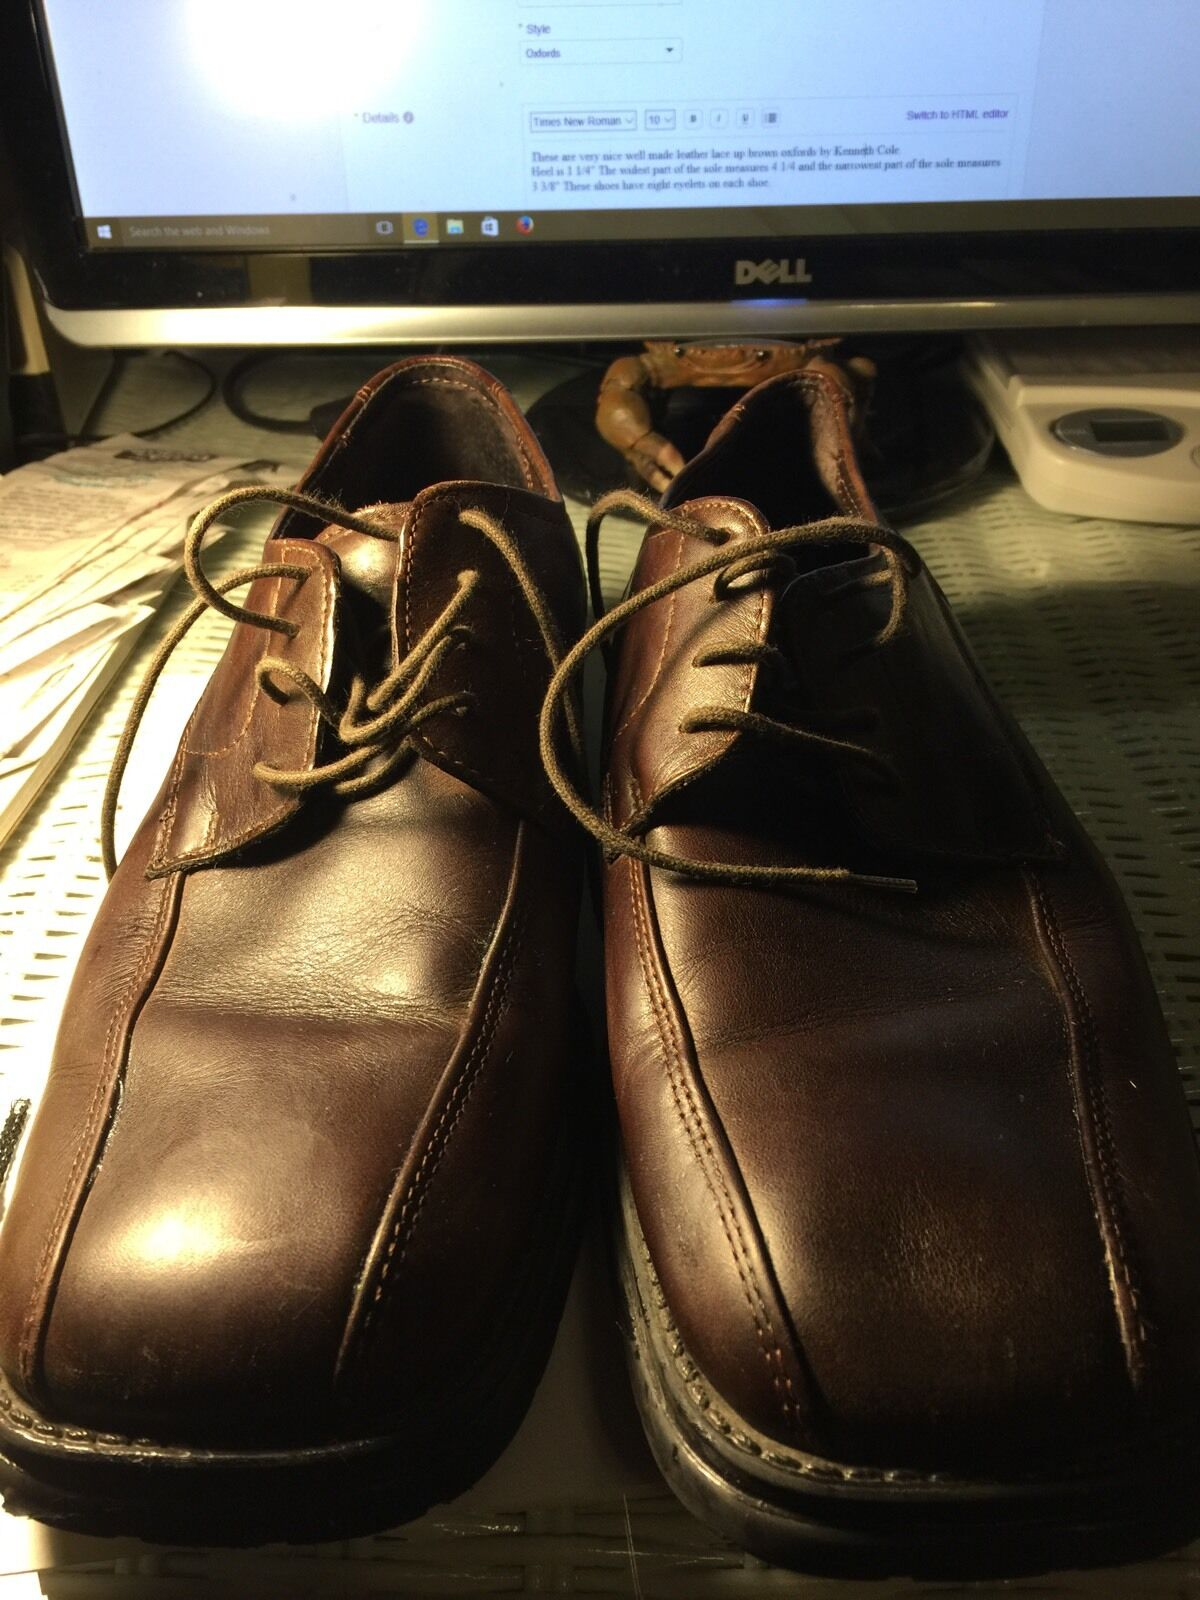 shoes, Men's, Brown leather lace up oxfords, by Reaction Kenneth Cole, SZ 8M